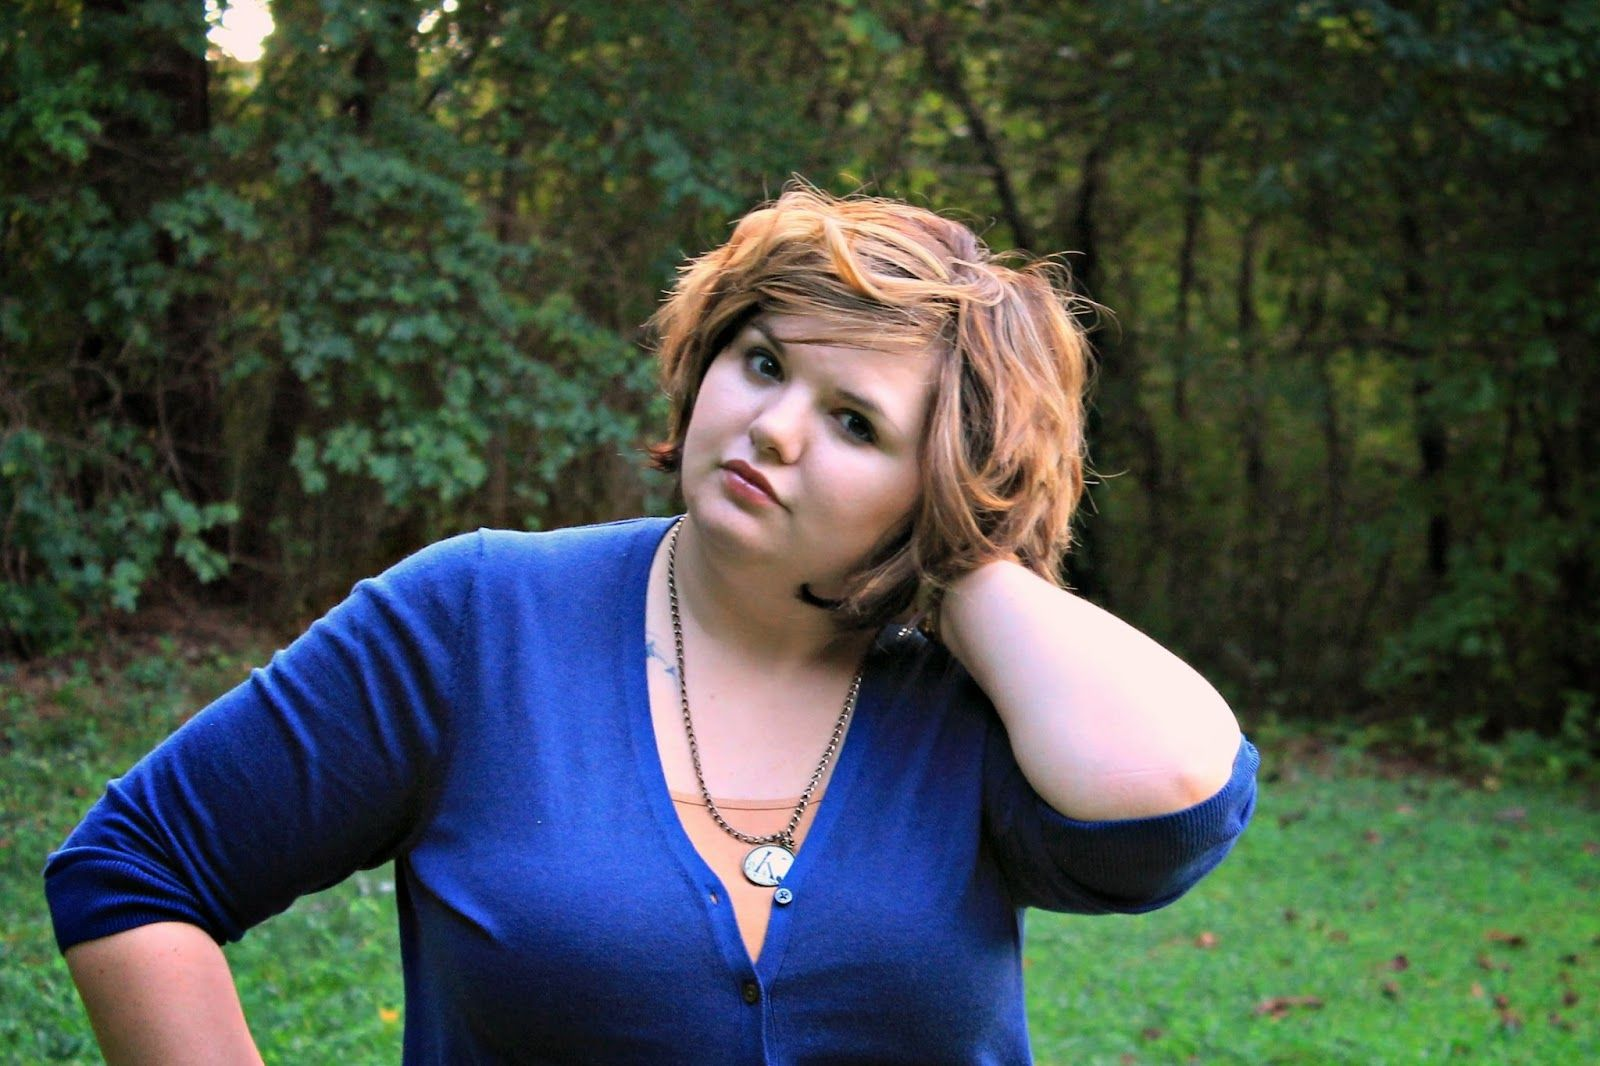 Hairstyles For Plus Size Women With Round Faces